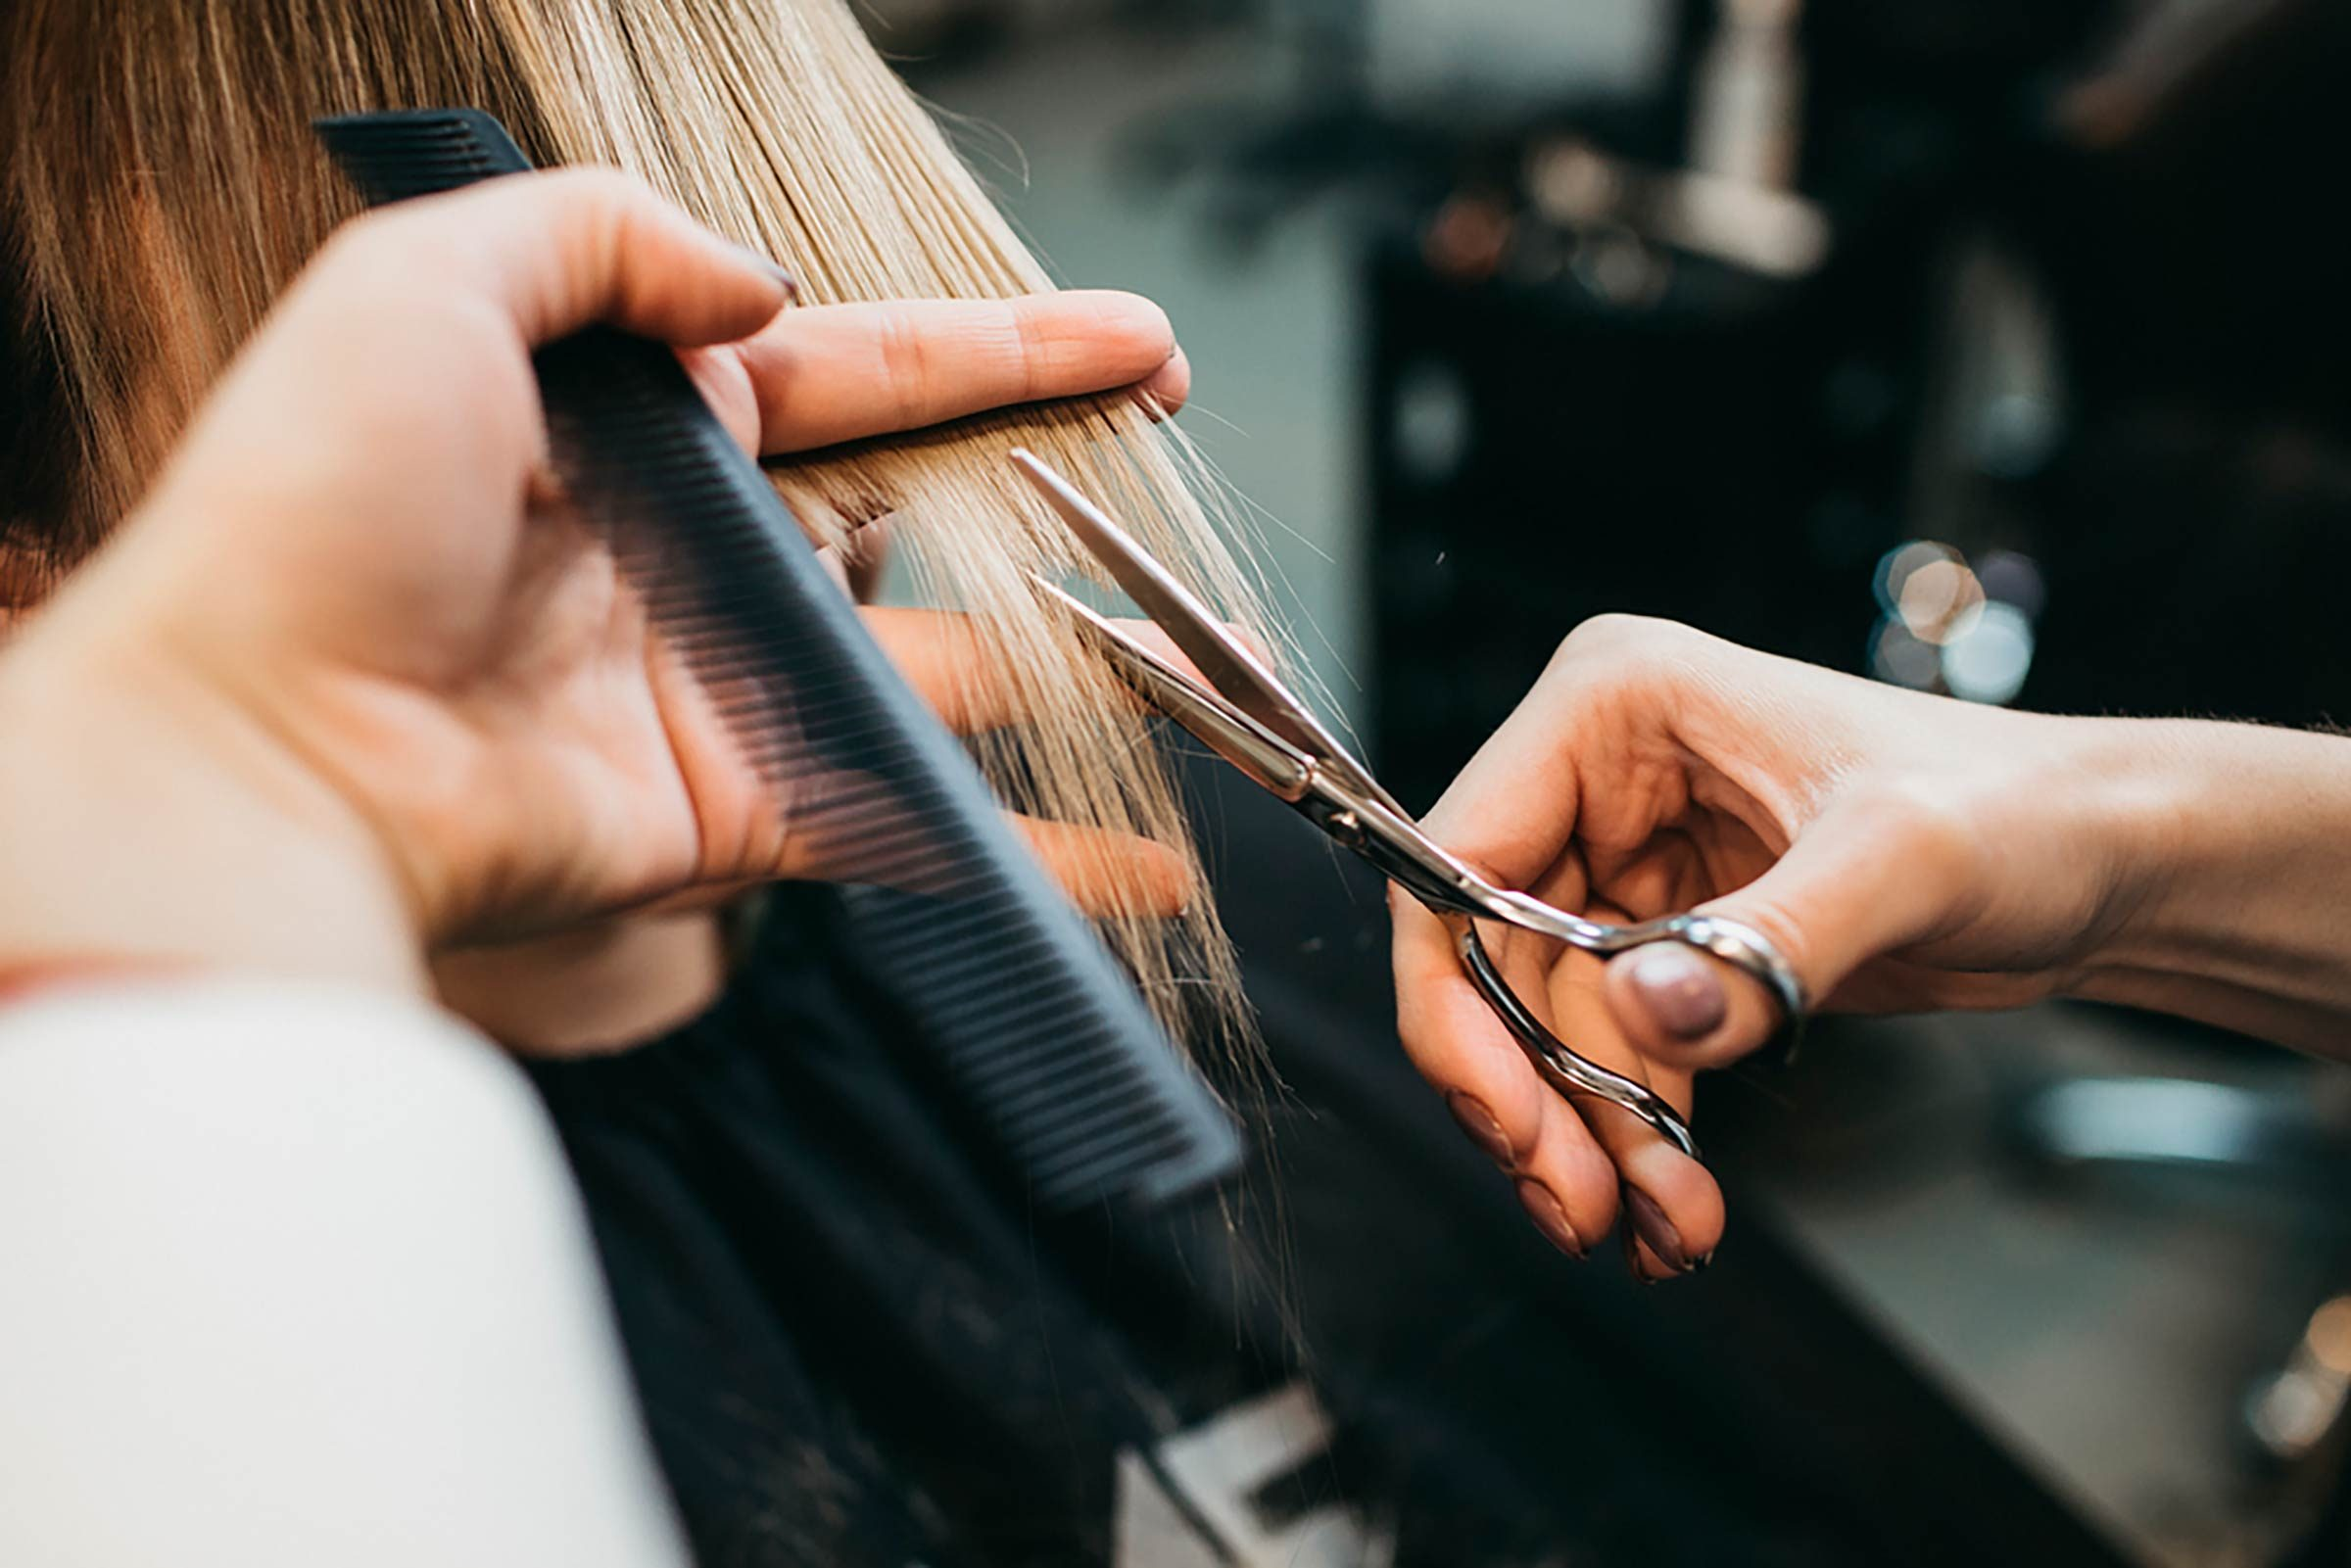 07-If-You-Have-Fine-Hair,-We're-Begging-You-to-Stop-Making-These-9-Styling-Mistakes-532148356-t.max